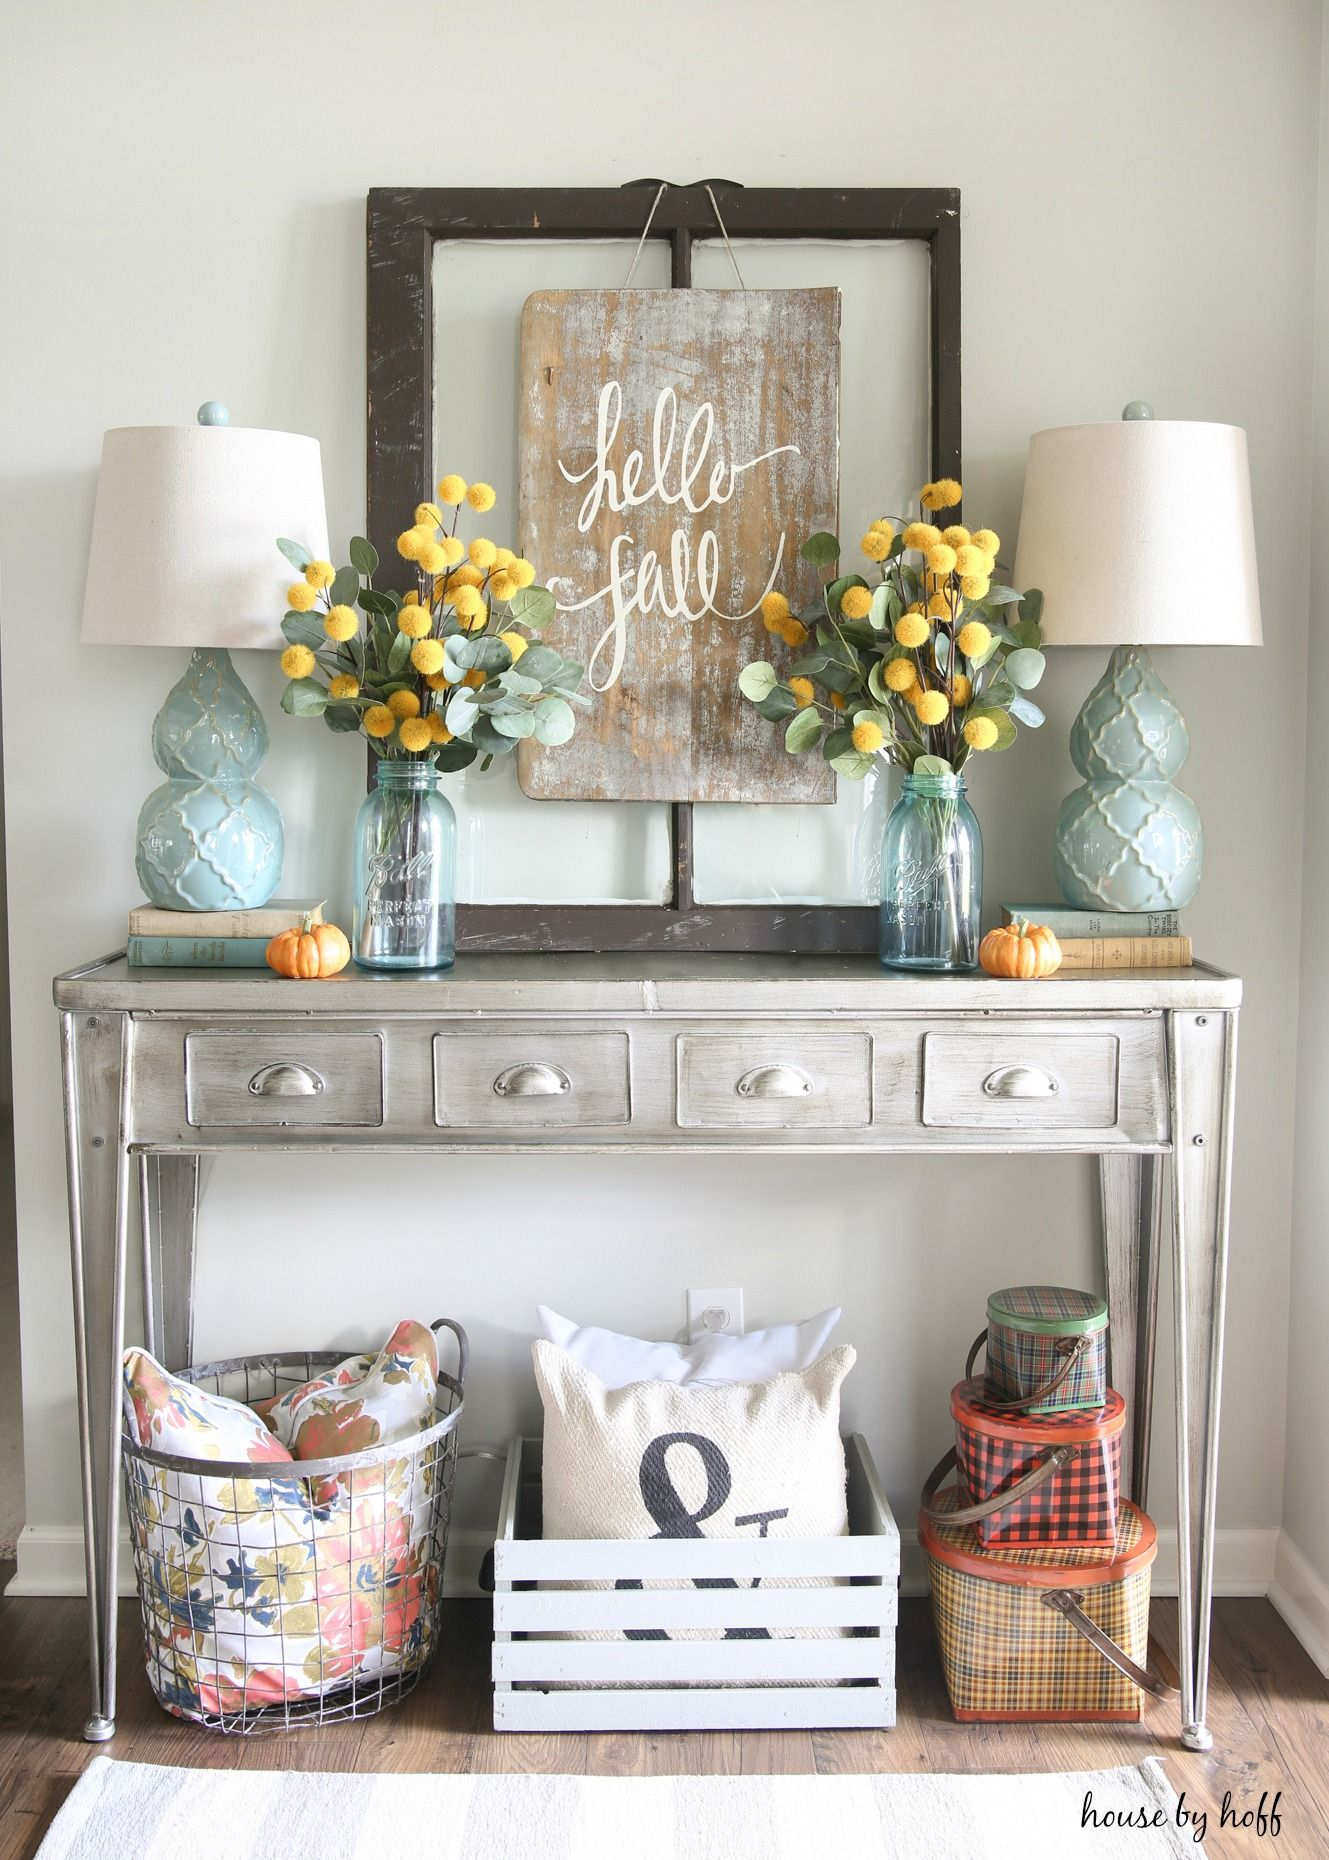 Room also diy sign for fall signs simple and house rh pinterest